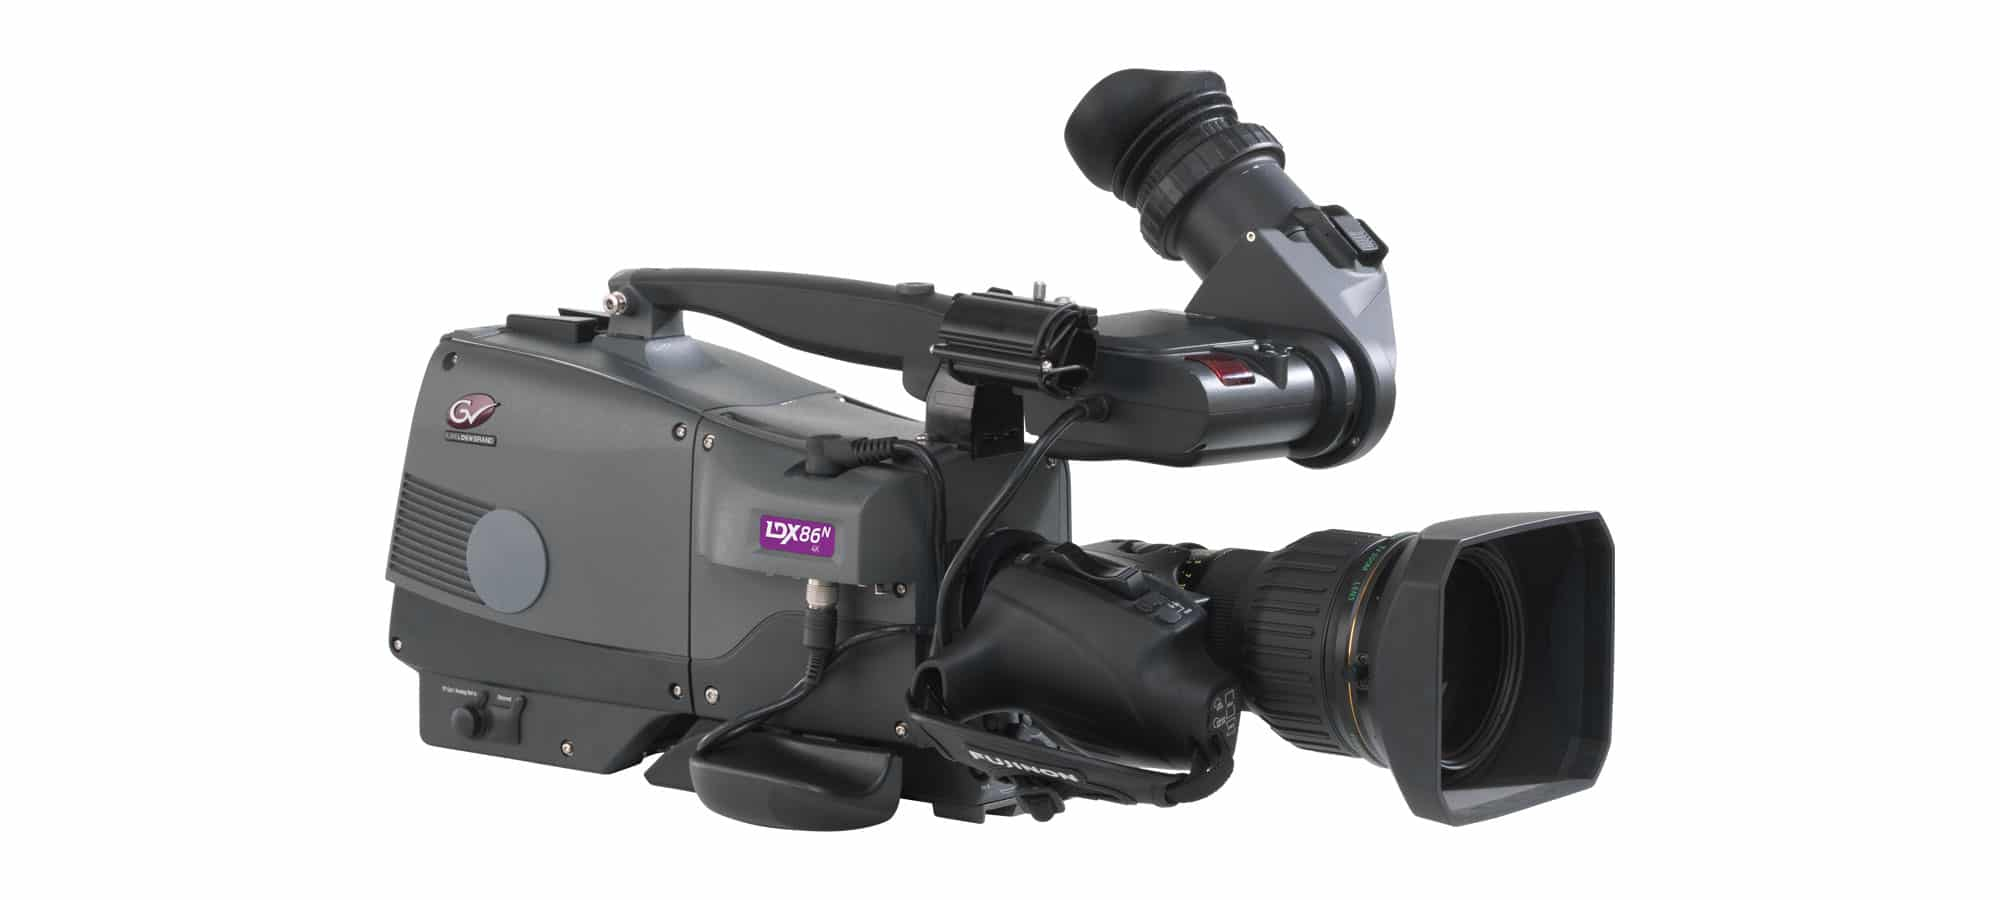 Grass Valley LDX 86N from its LDX Series camera range